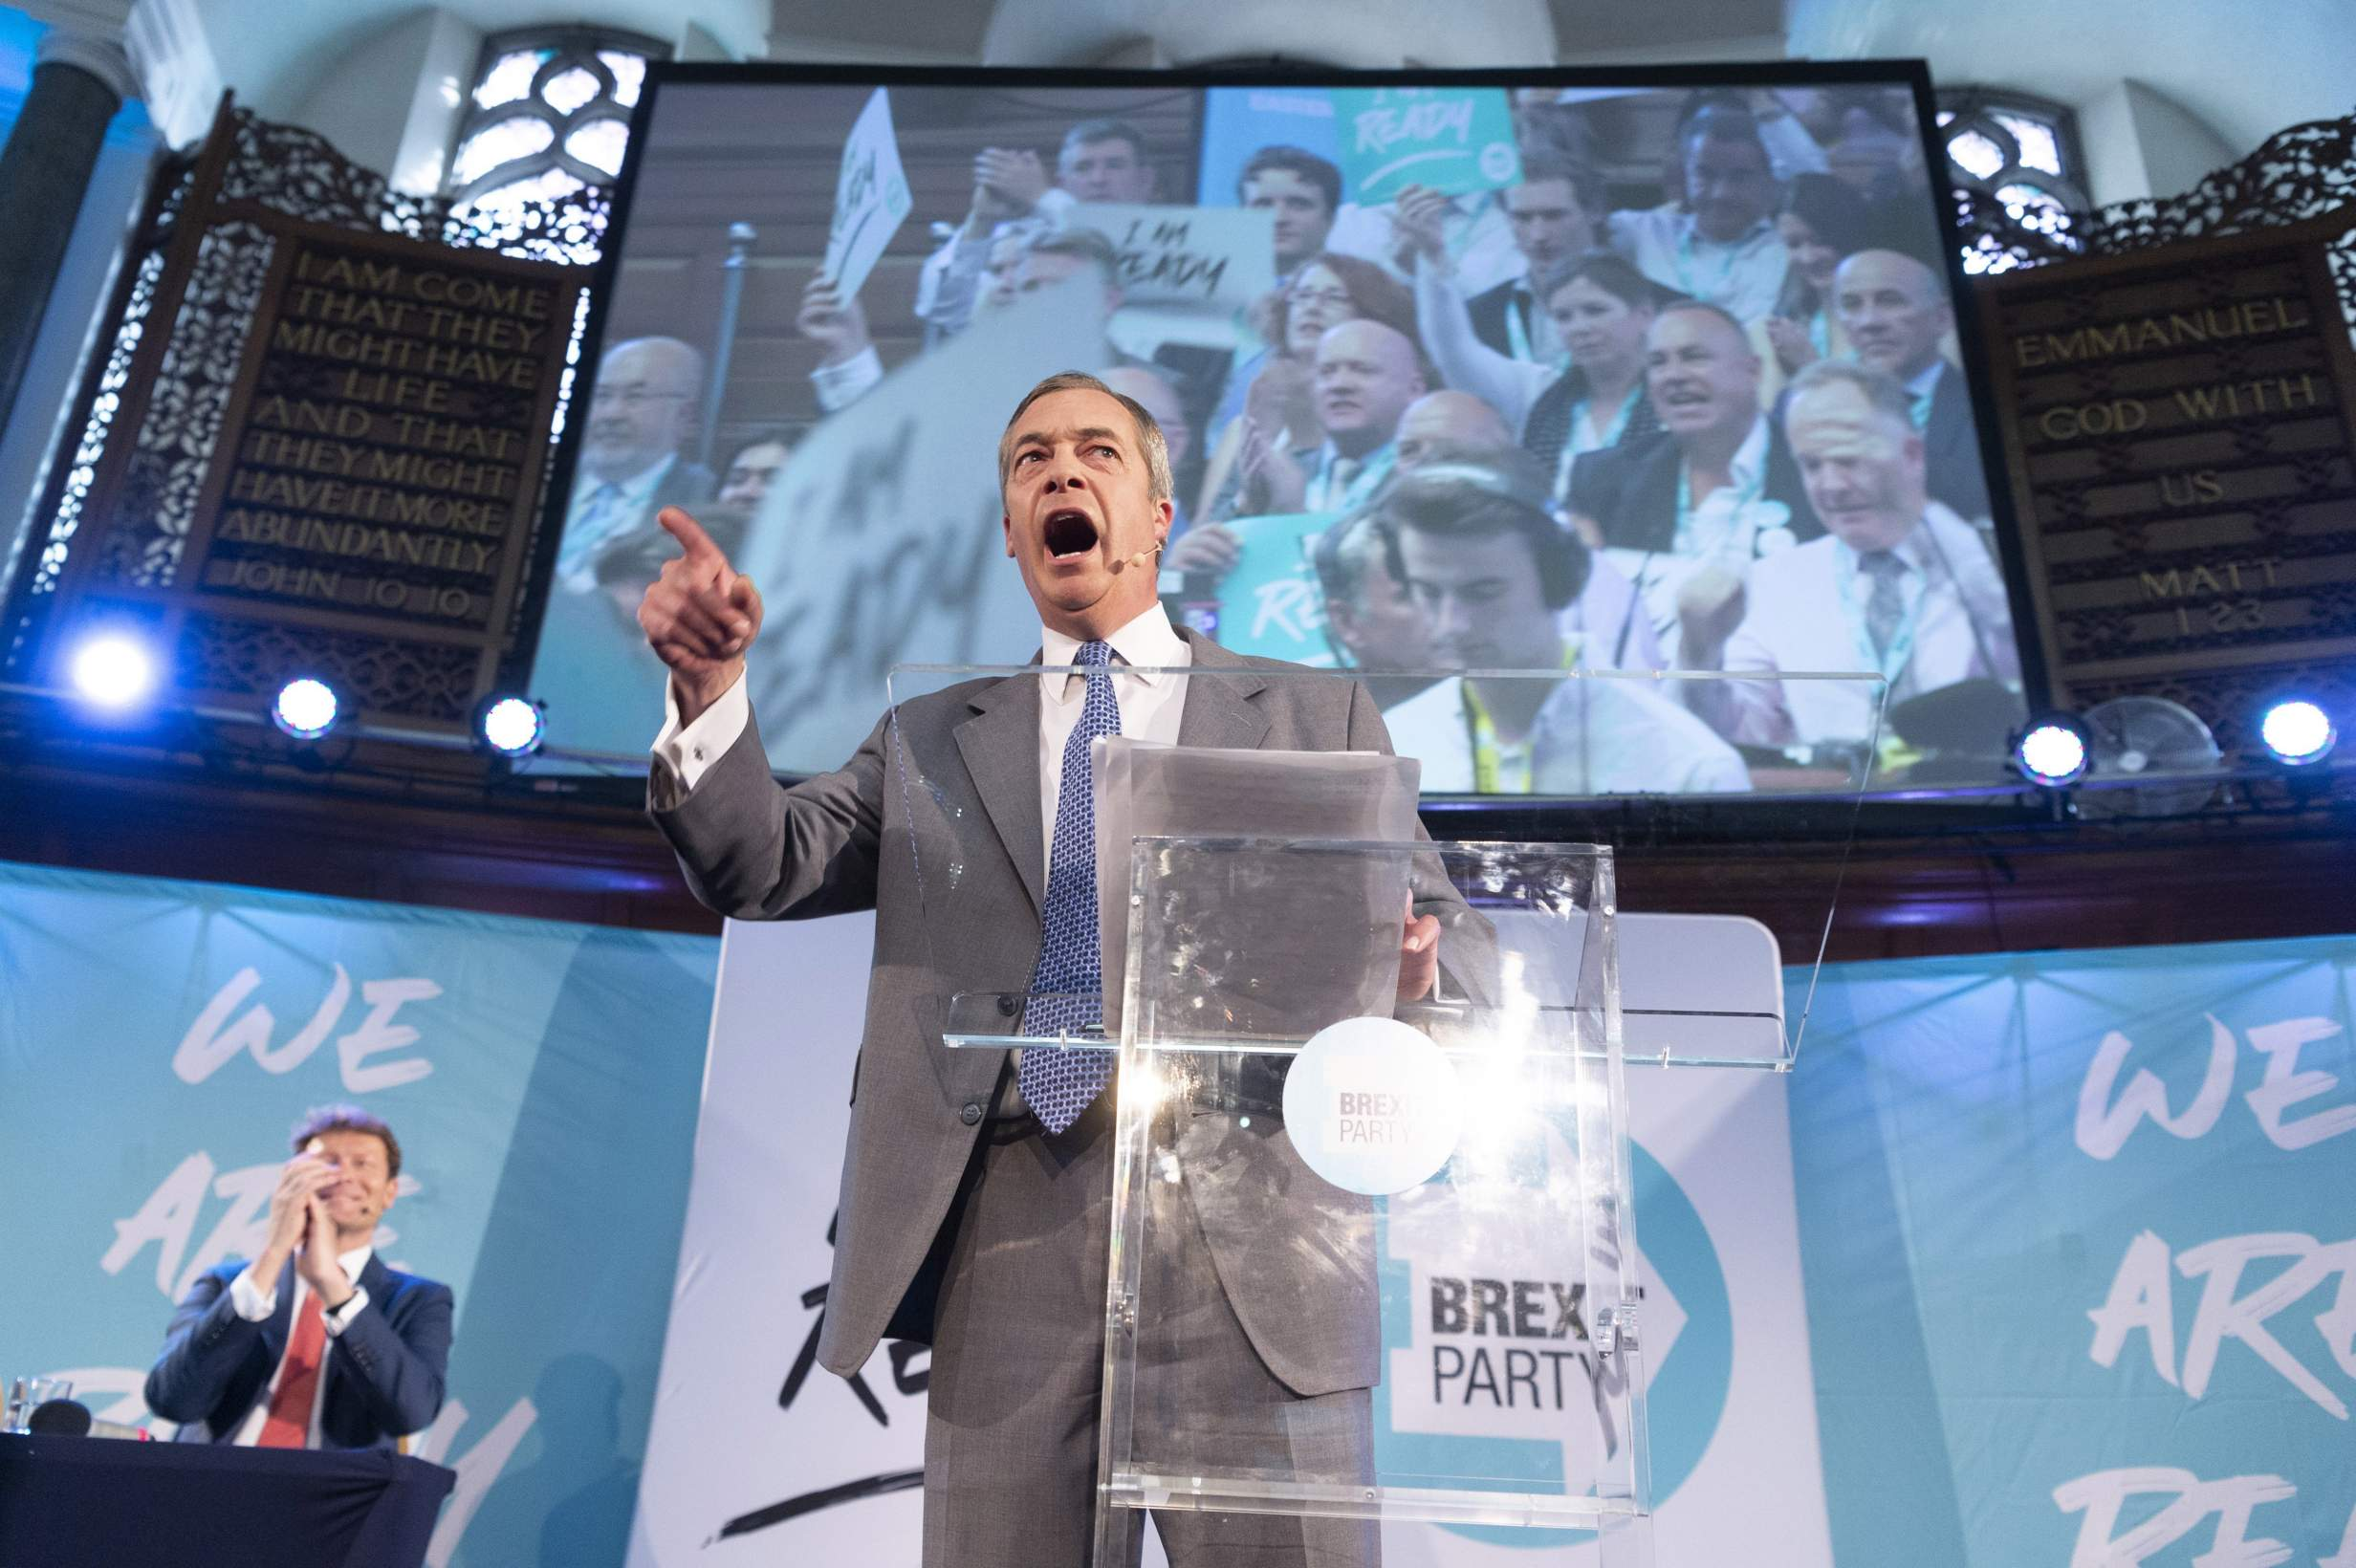 Brexit Party Paypal Investigation: Rampant Impermissible